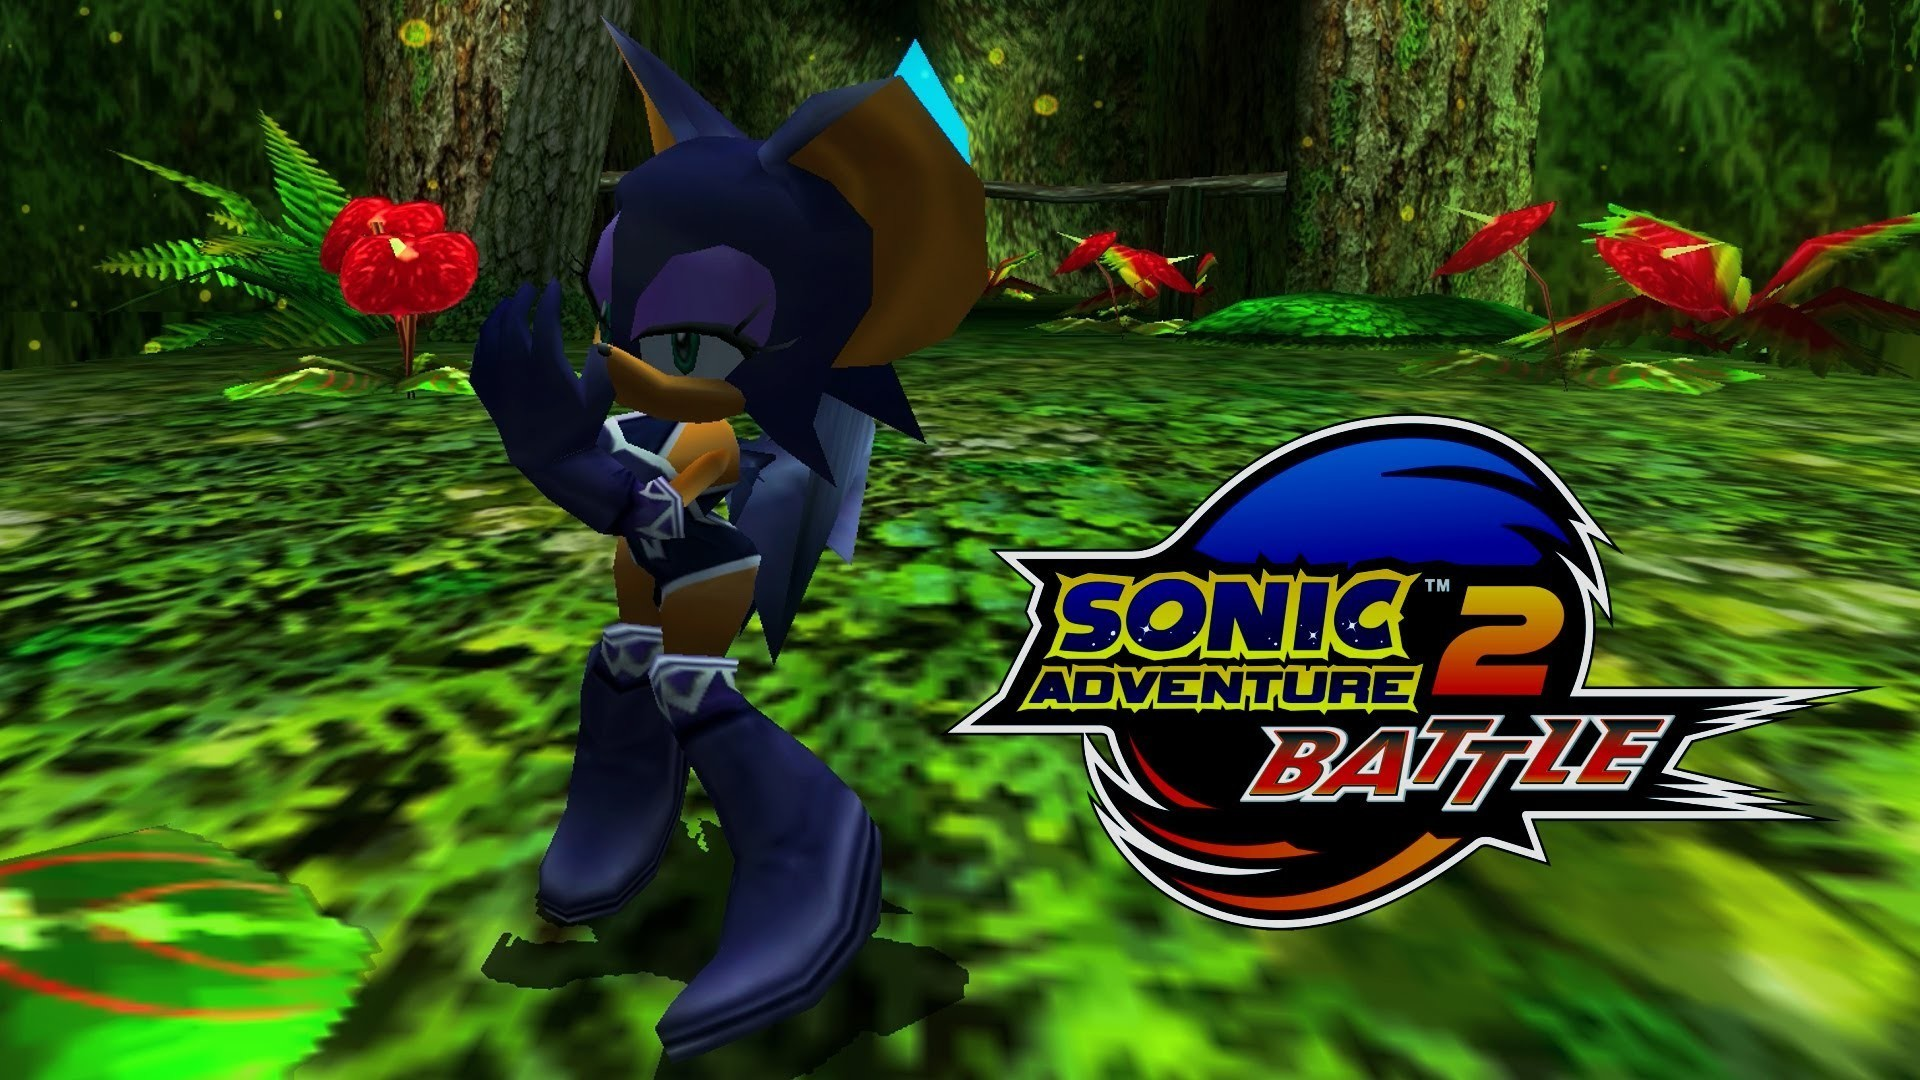 1920x1080  Sonic Adventure 2: Battle - Green Forest - Rouge (Dreamcast  costume) [REAL Full HD, Widescreen] - YouTube